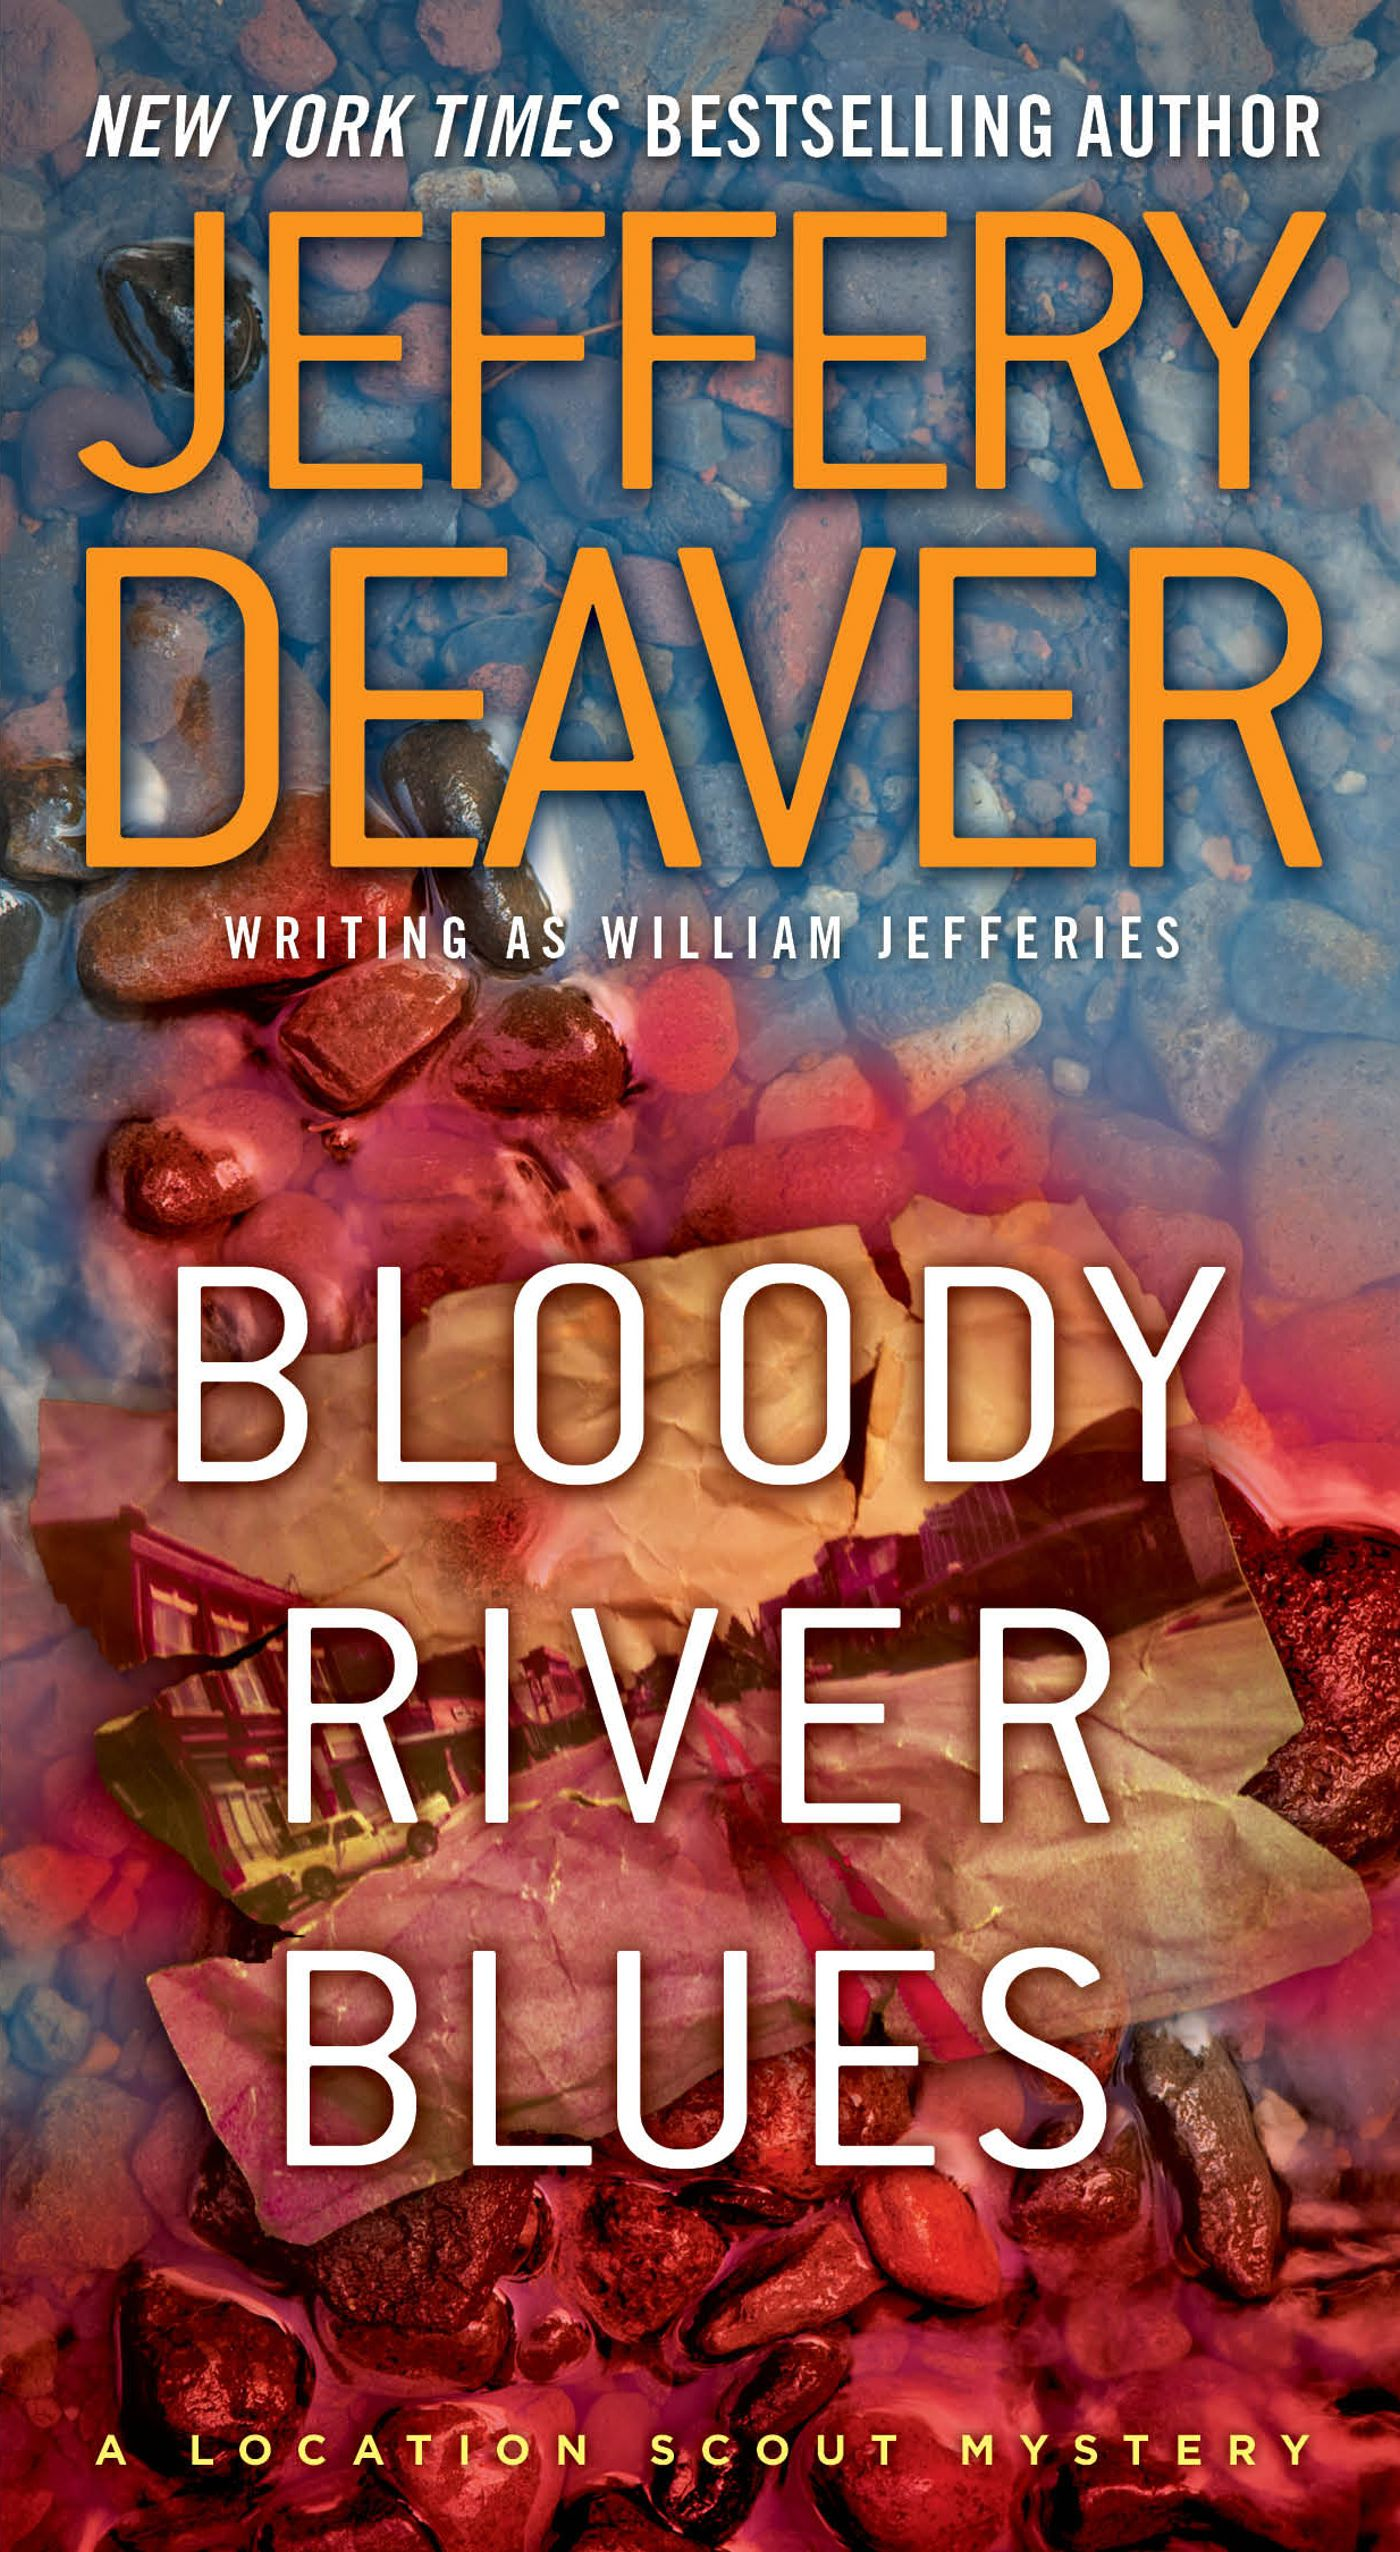 Bloody-river-blues-9781451621693_hr